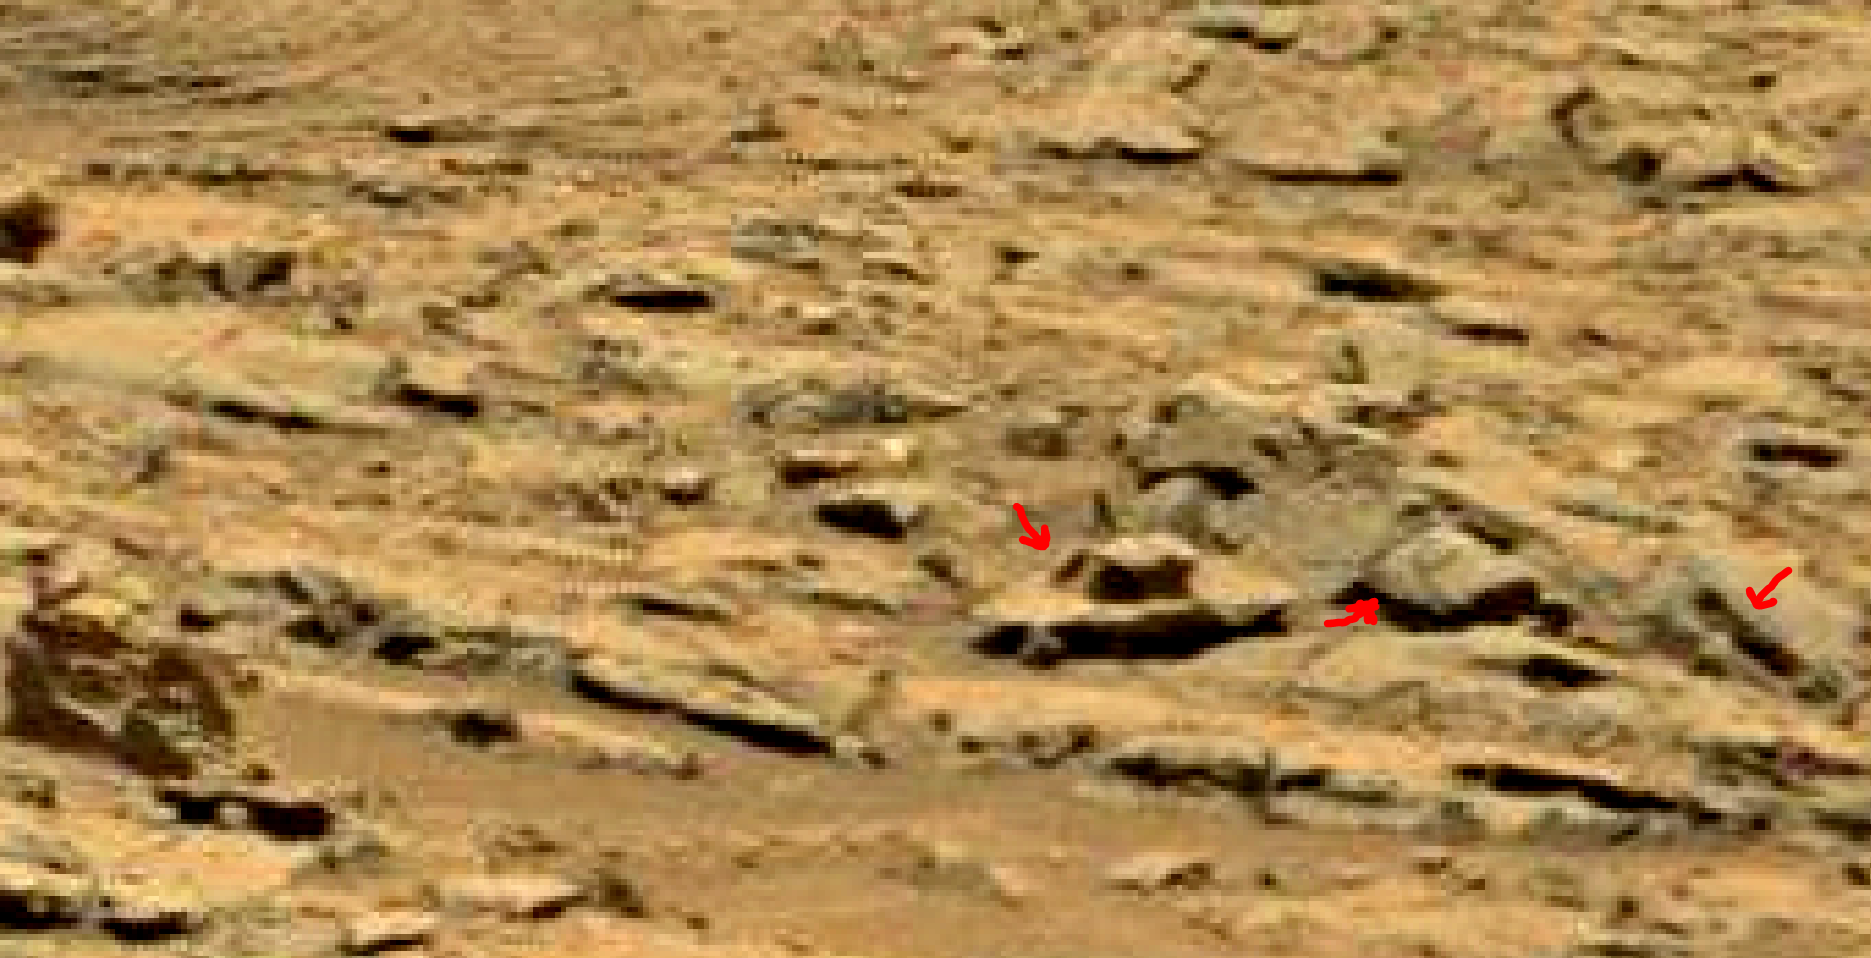 mars sol 1353 anomaly-artifacts 46 was life on mars